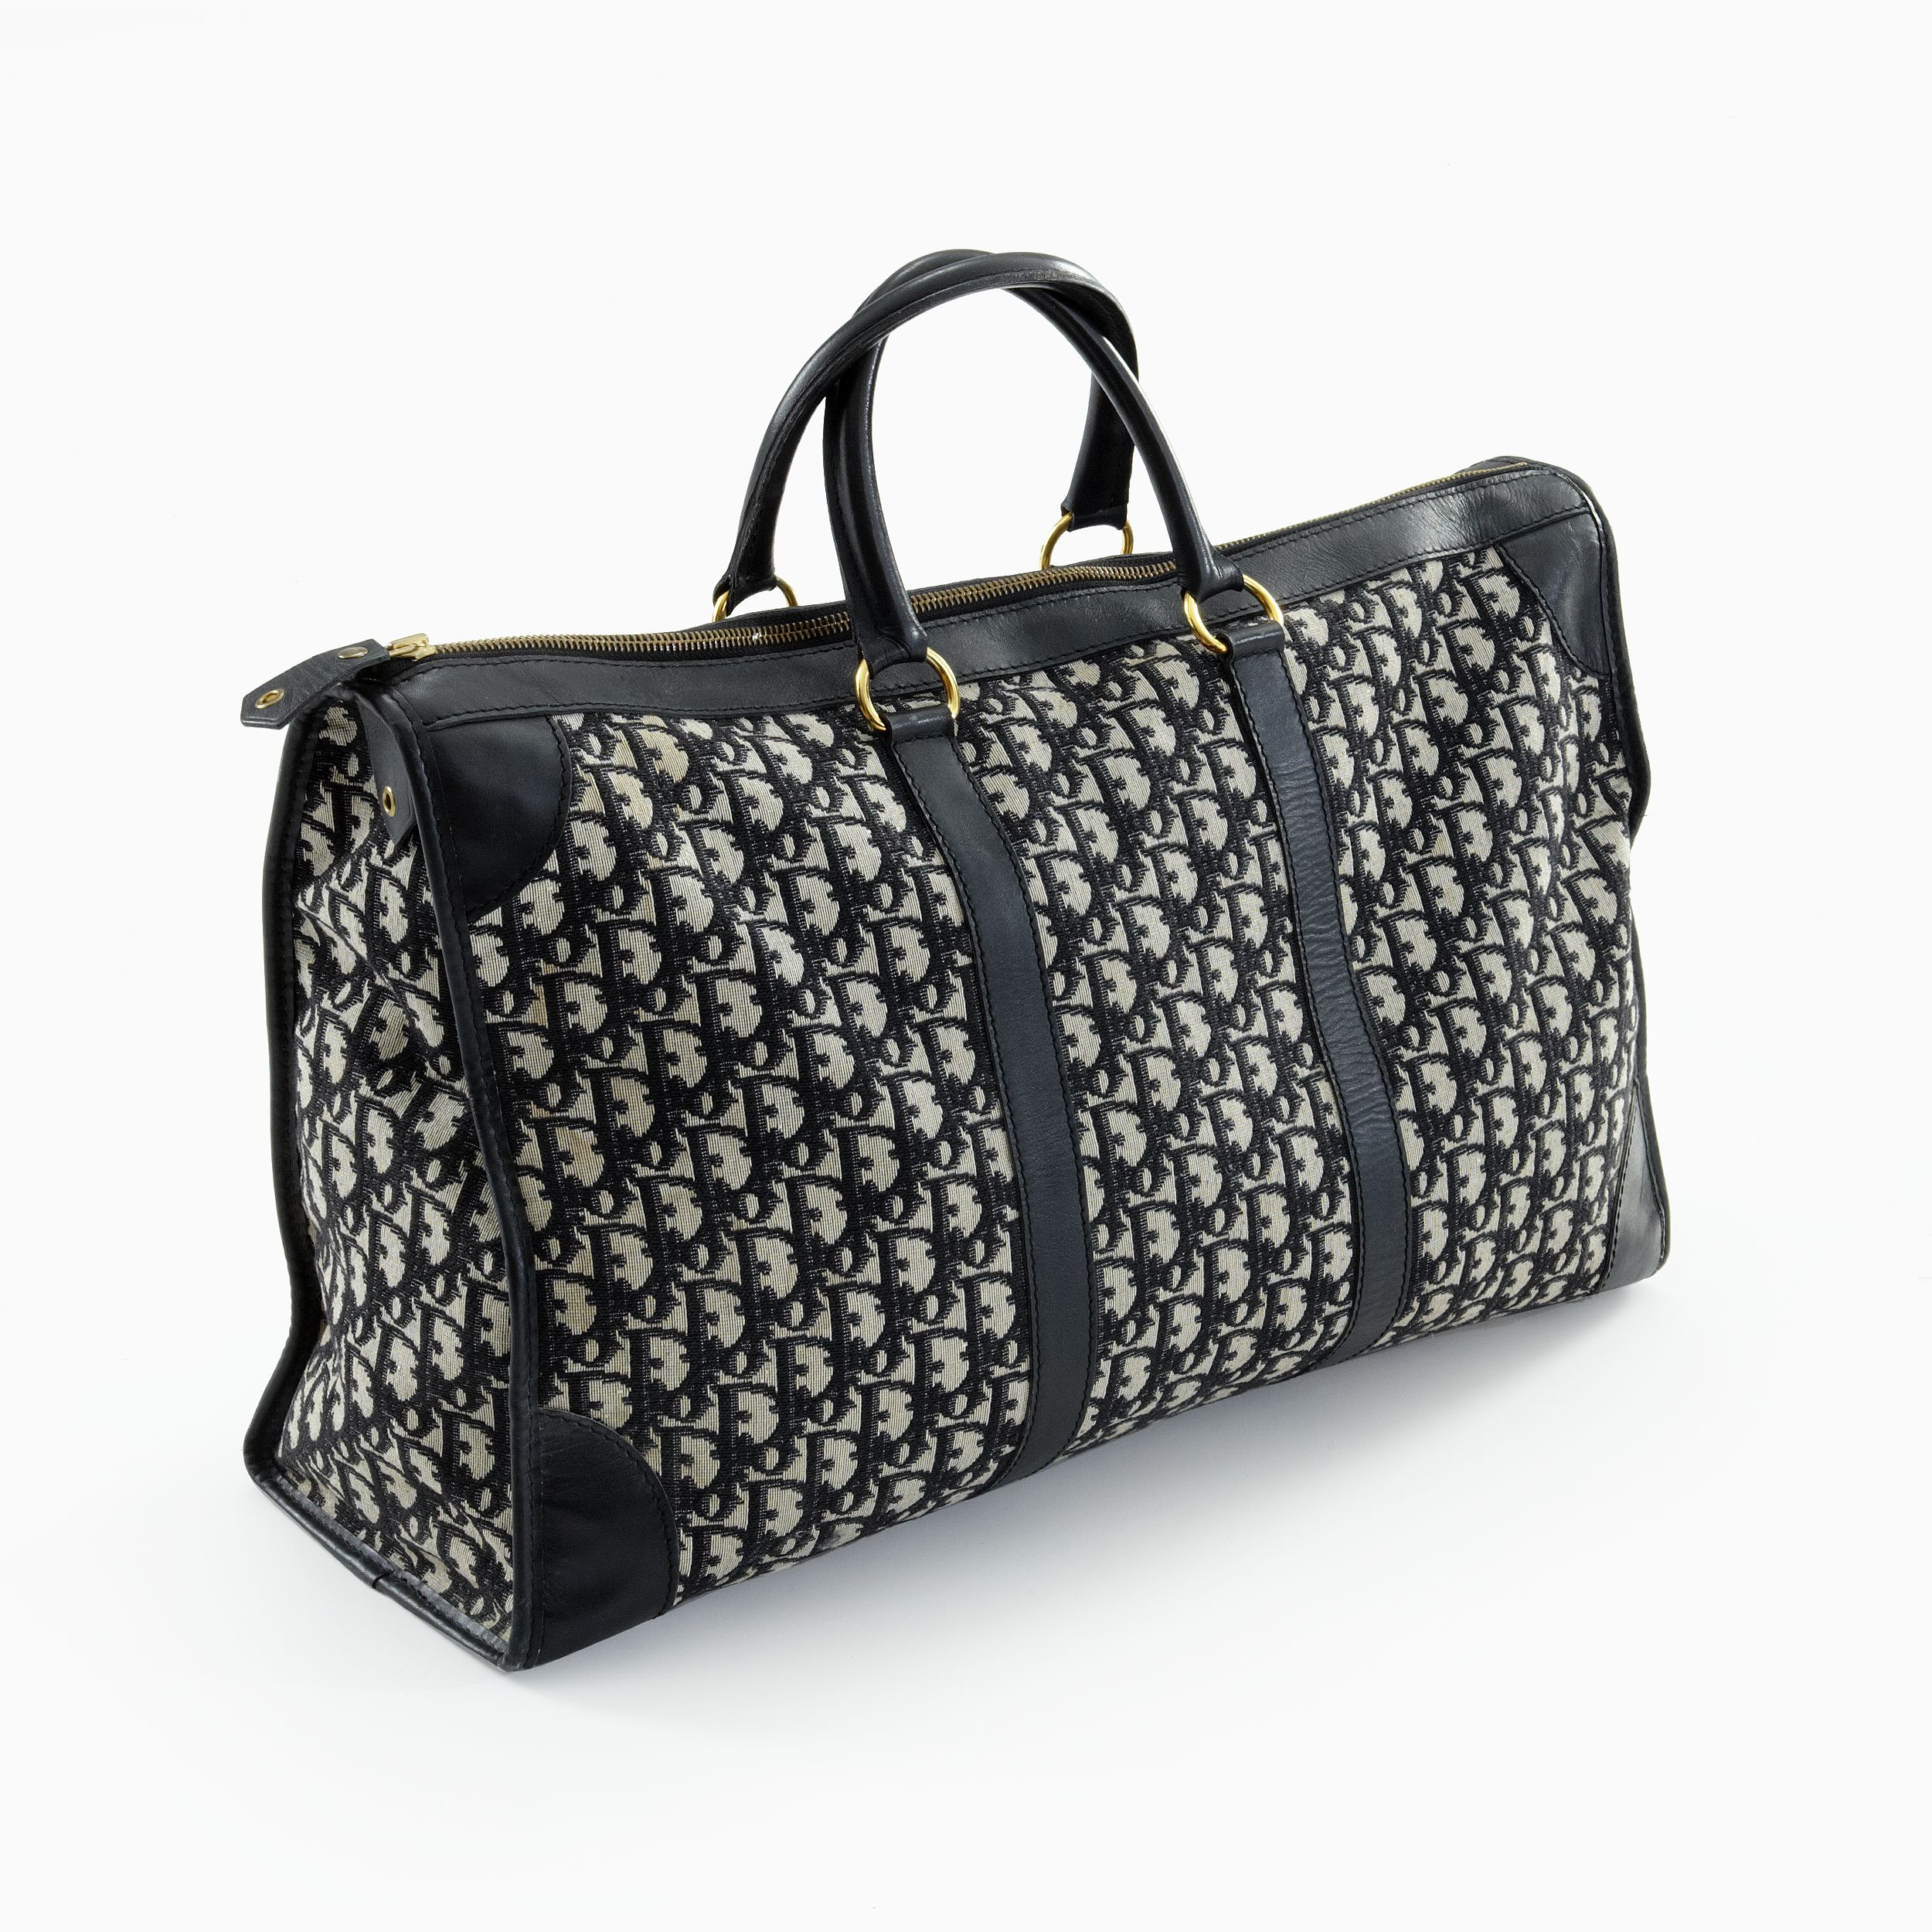 Christian Dior, Paris, weekendbag